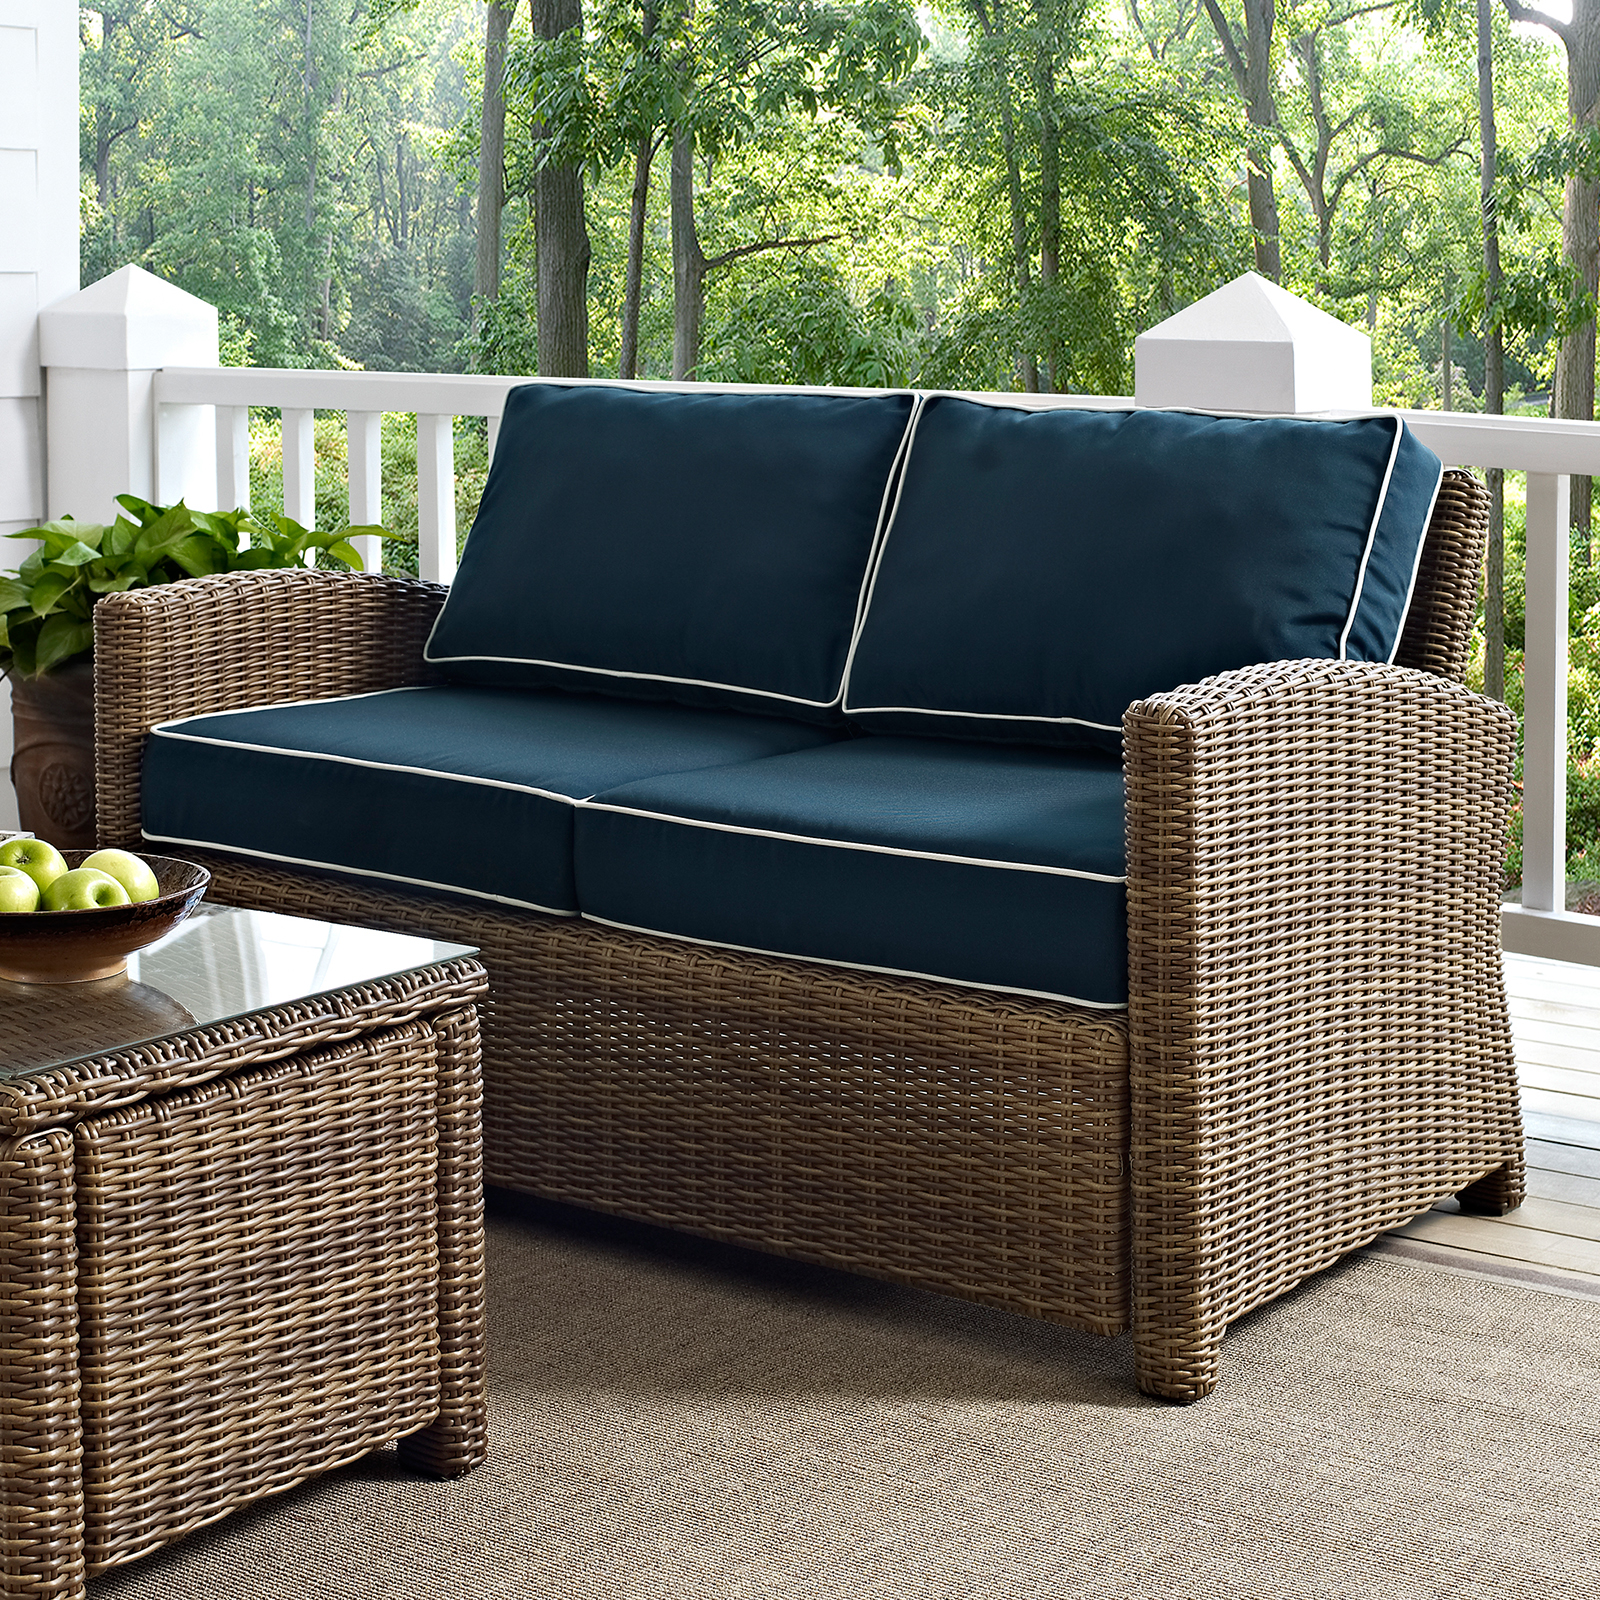 Patio Furniture On Hayneedle Outdoor Sets. Outdoor Furniture Canberra Masters   Furniture Ideas